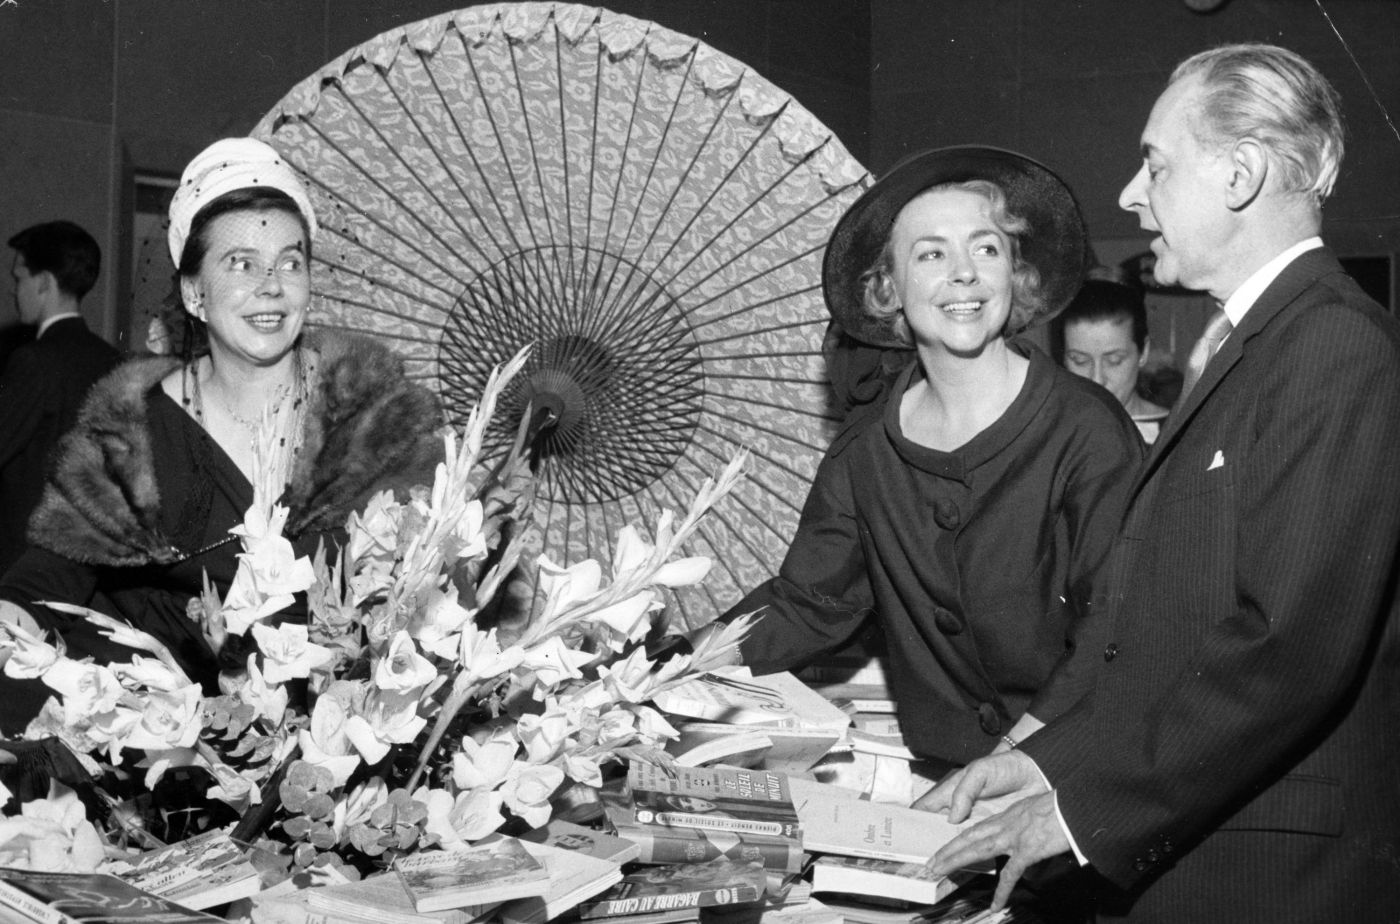 Black and white photograph of an older man, and two elegantly dressed, smiling middle-aged women. They are standing around a table with books piled around a large bouquet of flowers and an open parasol.